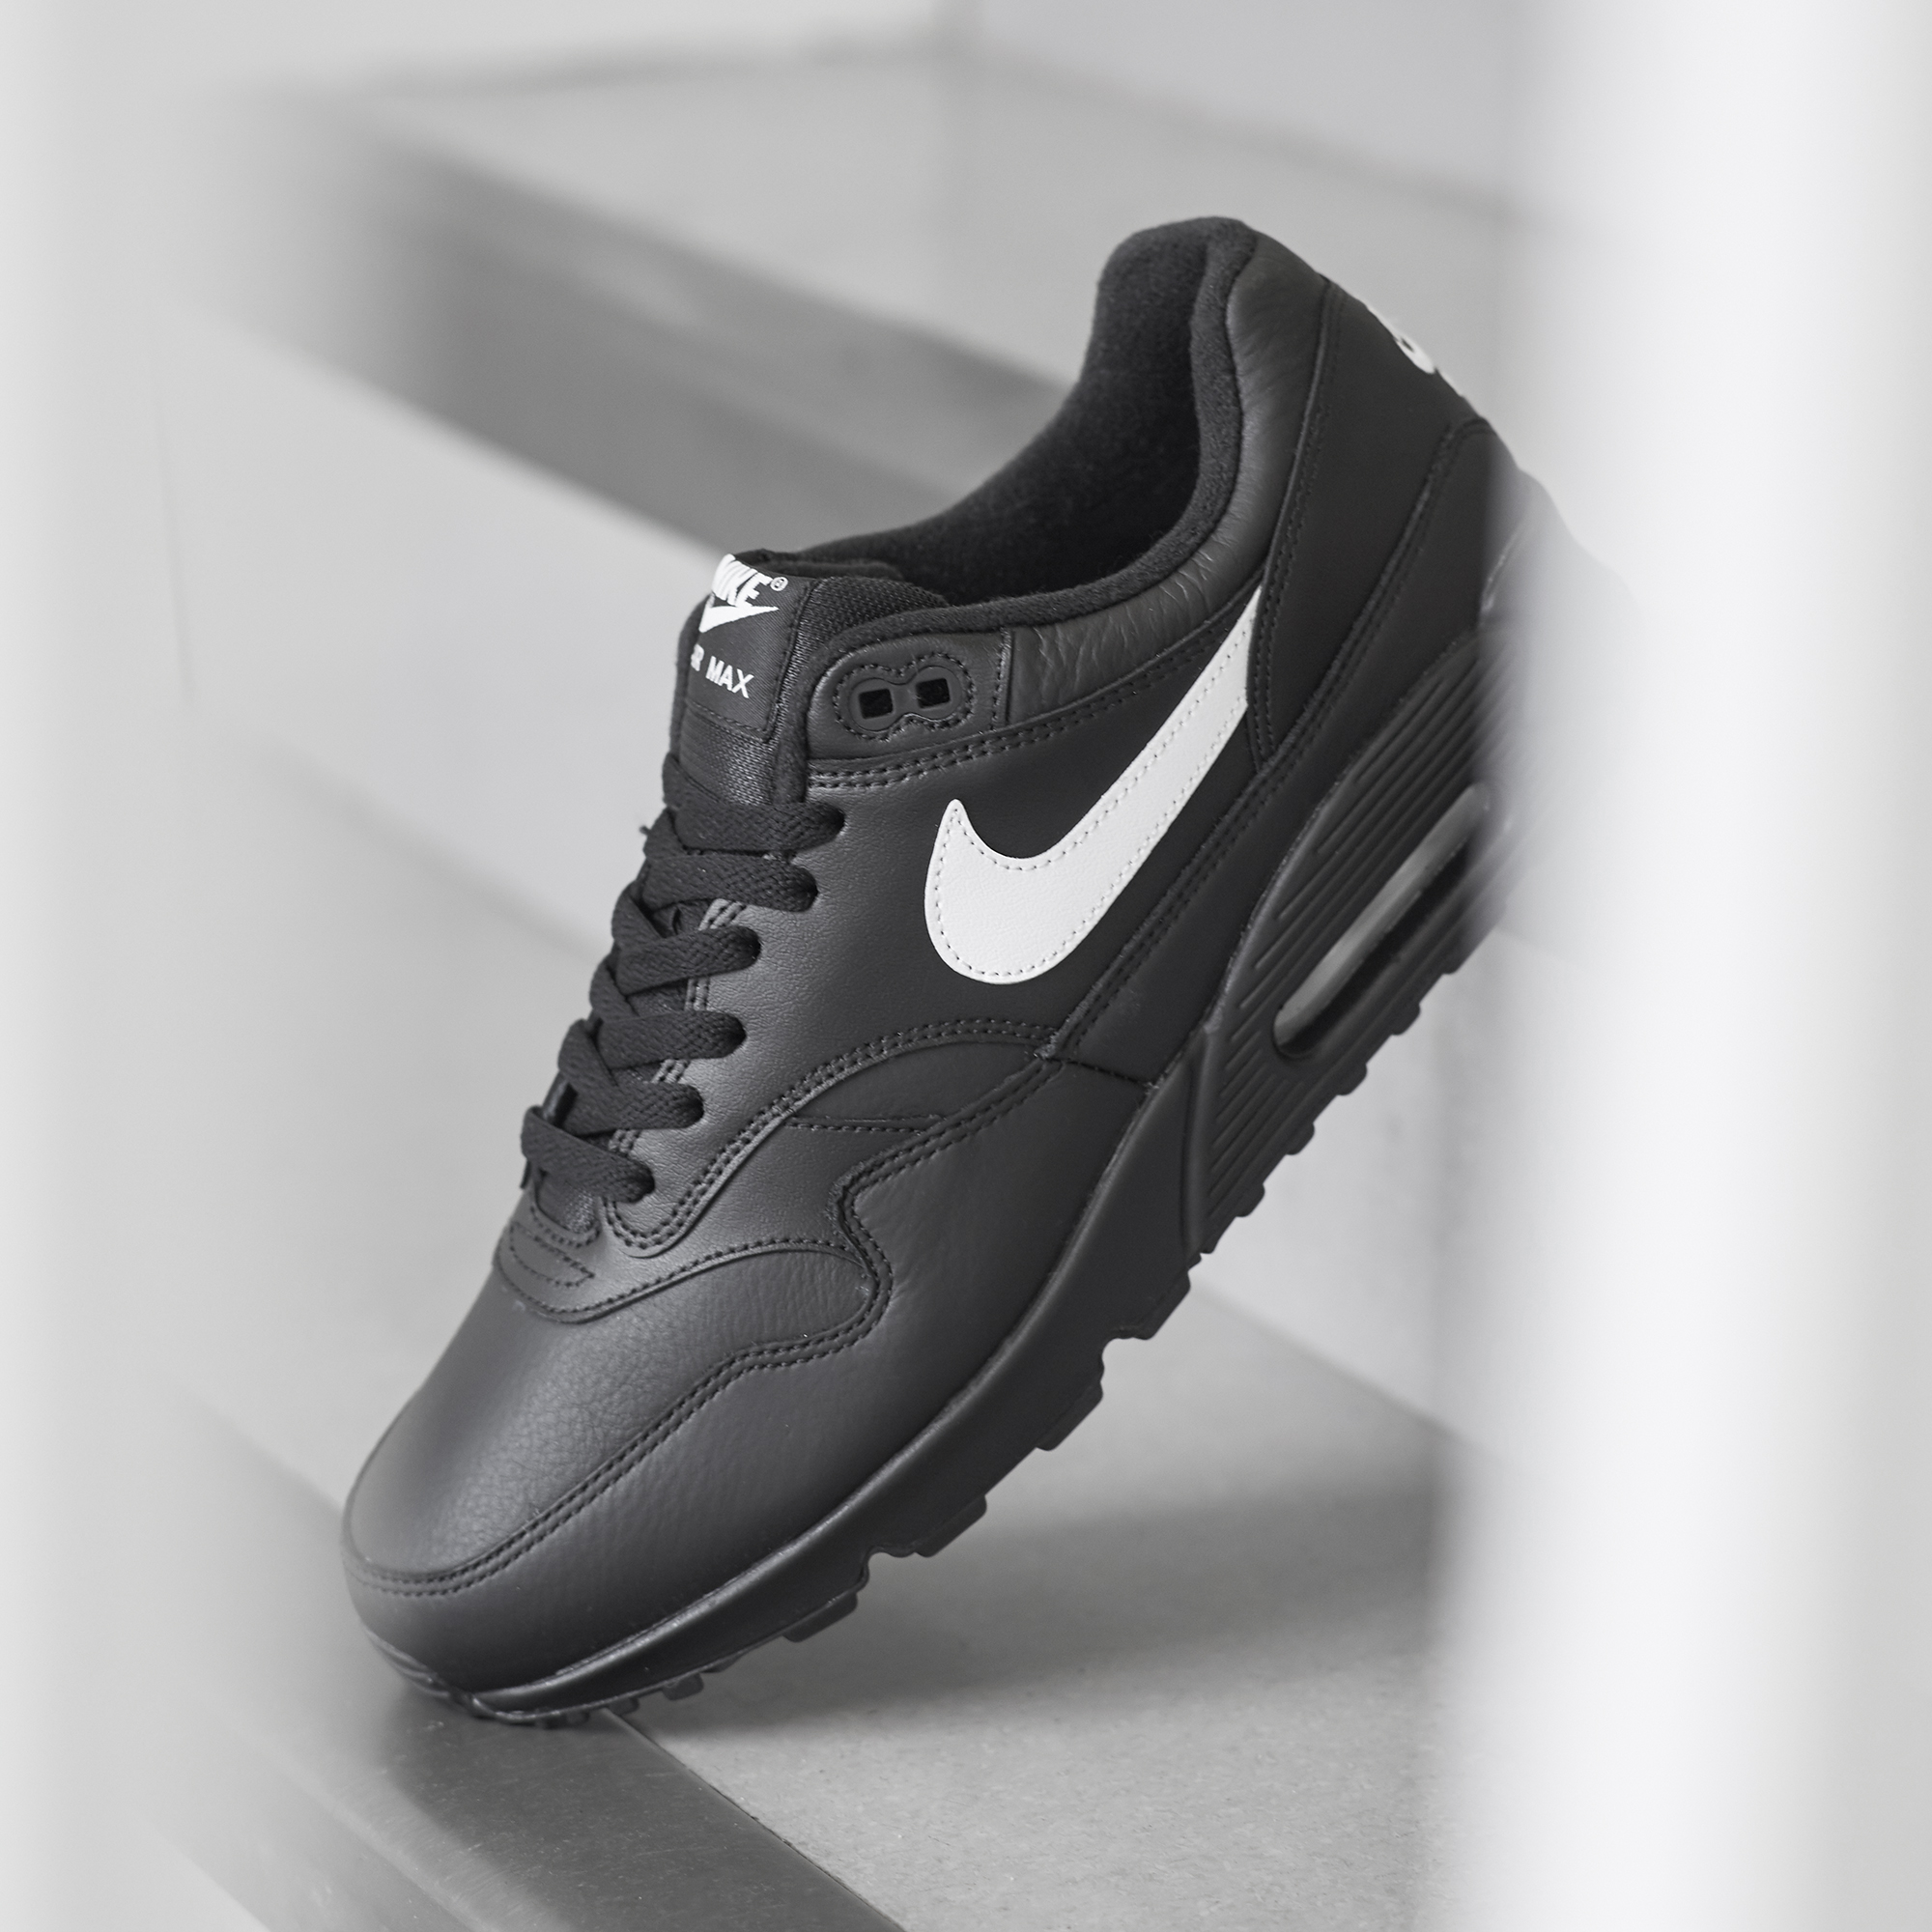 check out 2f2b4 4f1eb Check out our Nike Air Max Archive here at size  HQ.